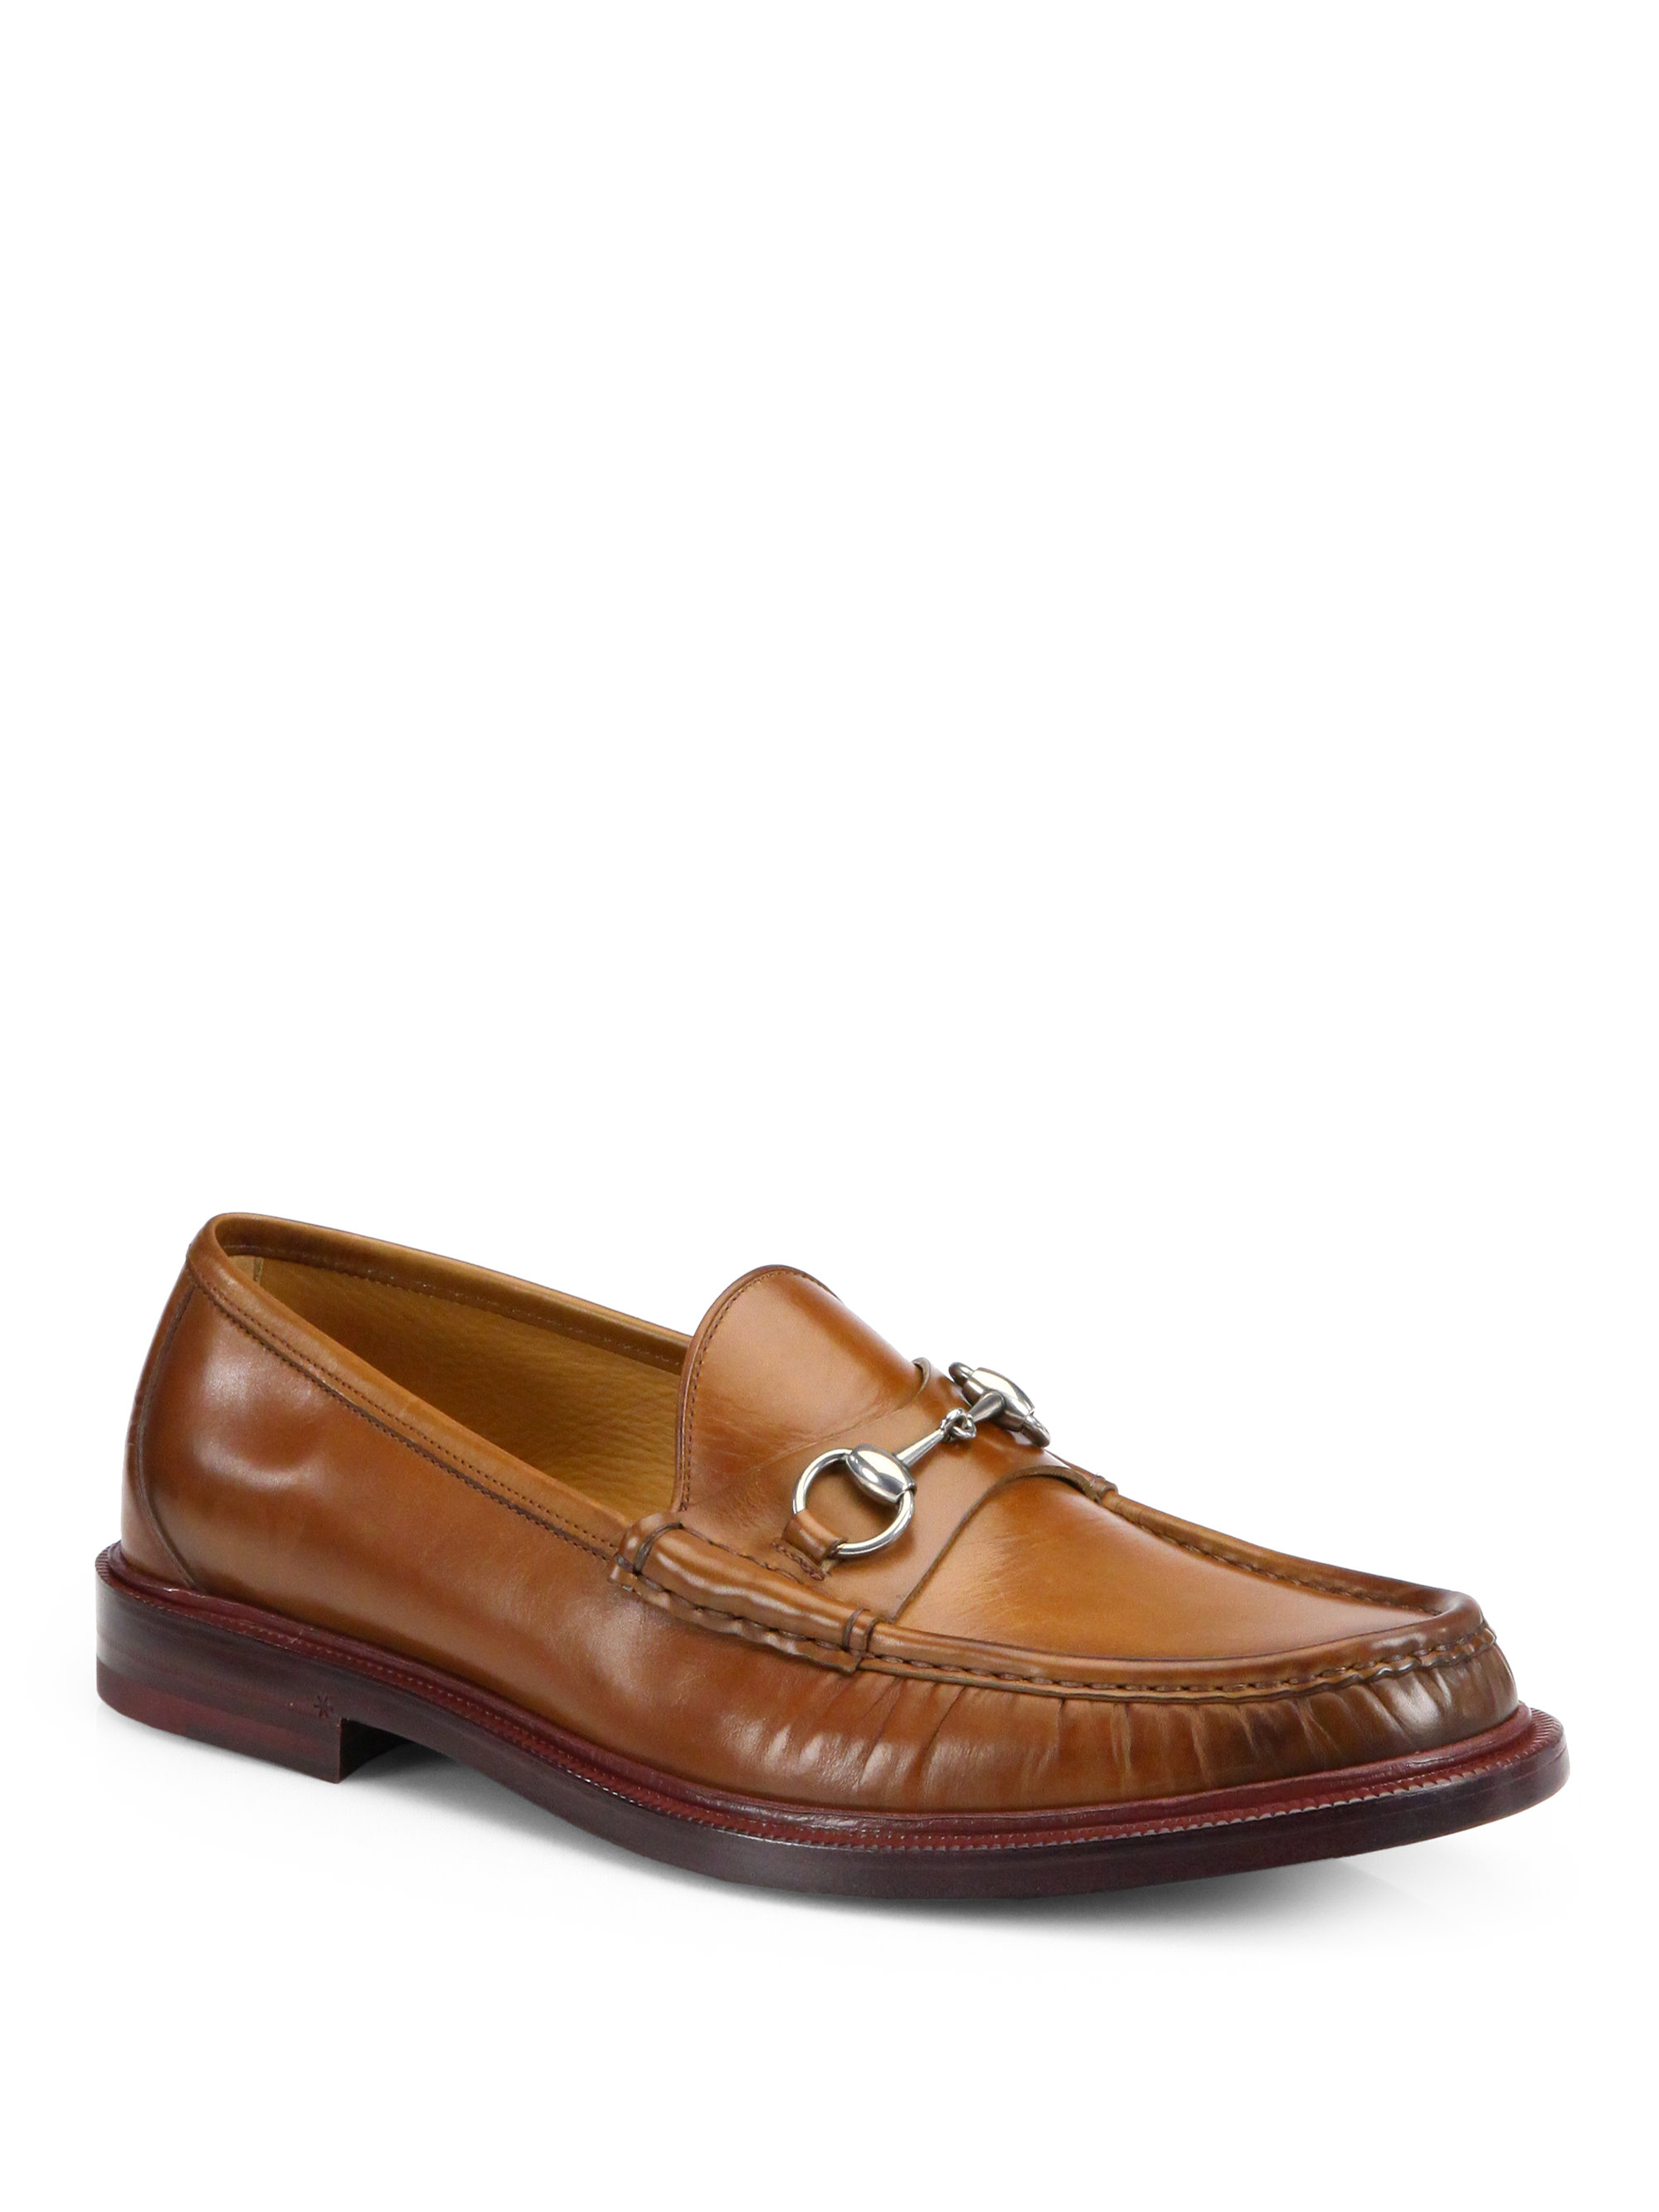 Brown Loafers Mens Shoes